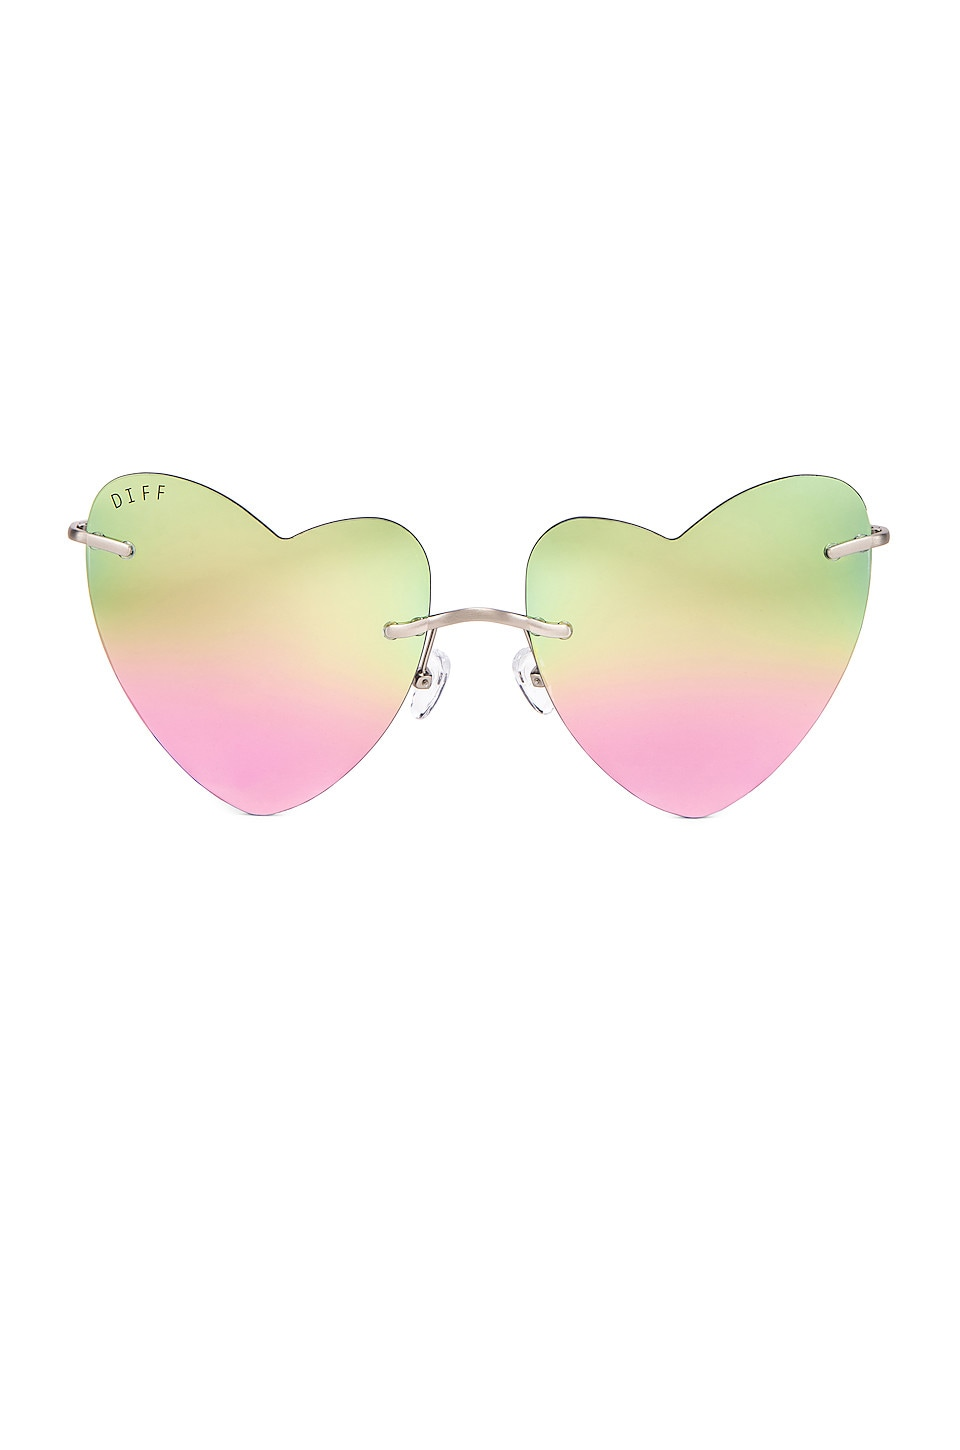 DIFF EYEWEAR Remy in Brushed Silver & Pastel Rainbow